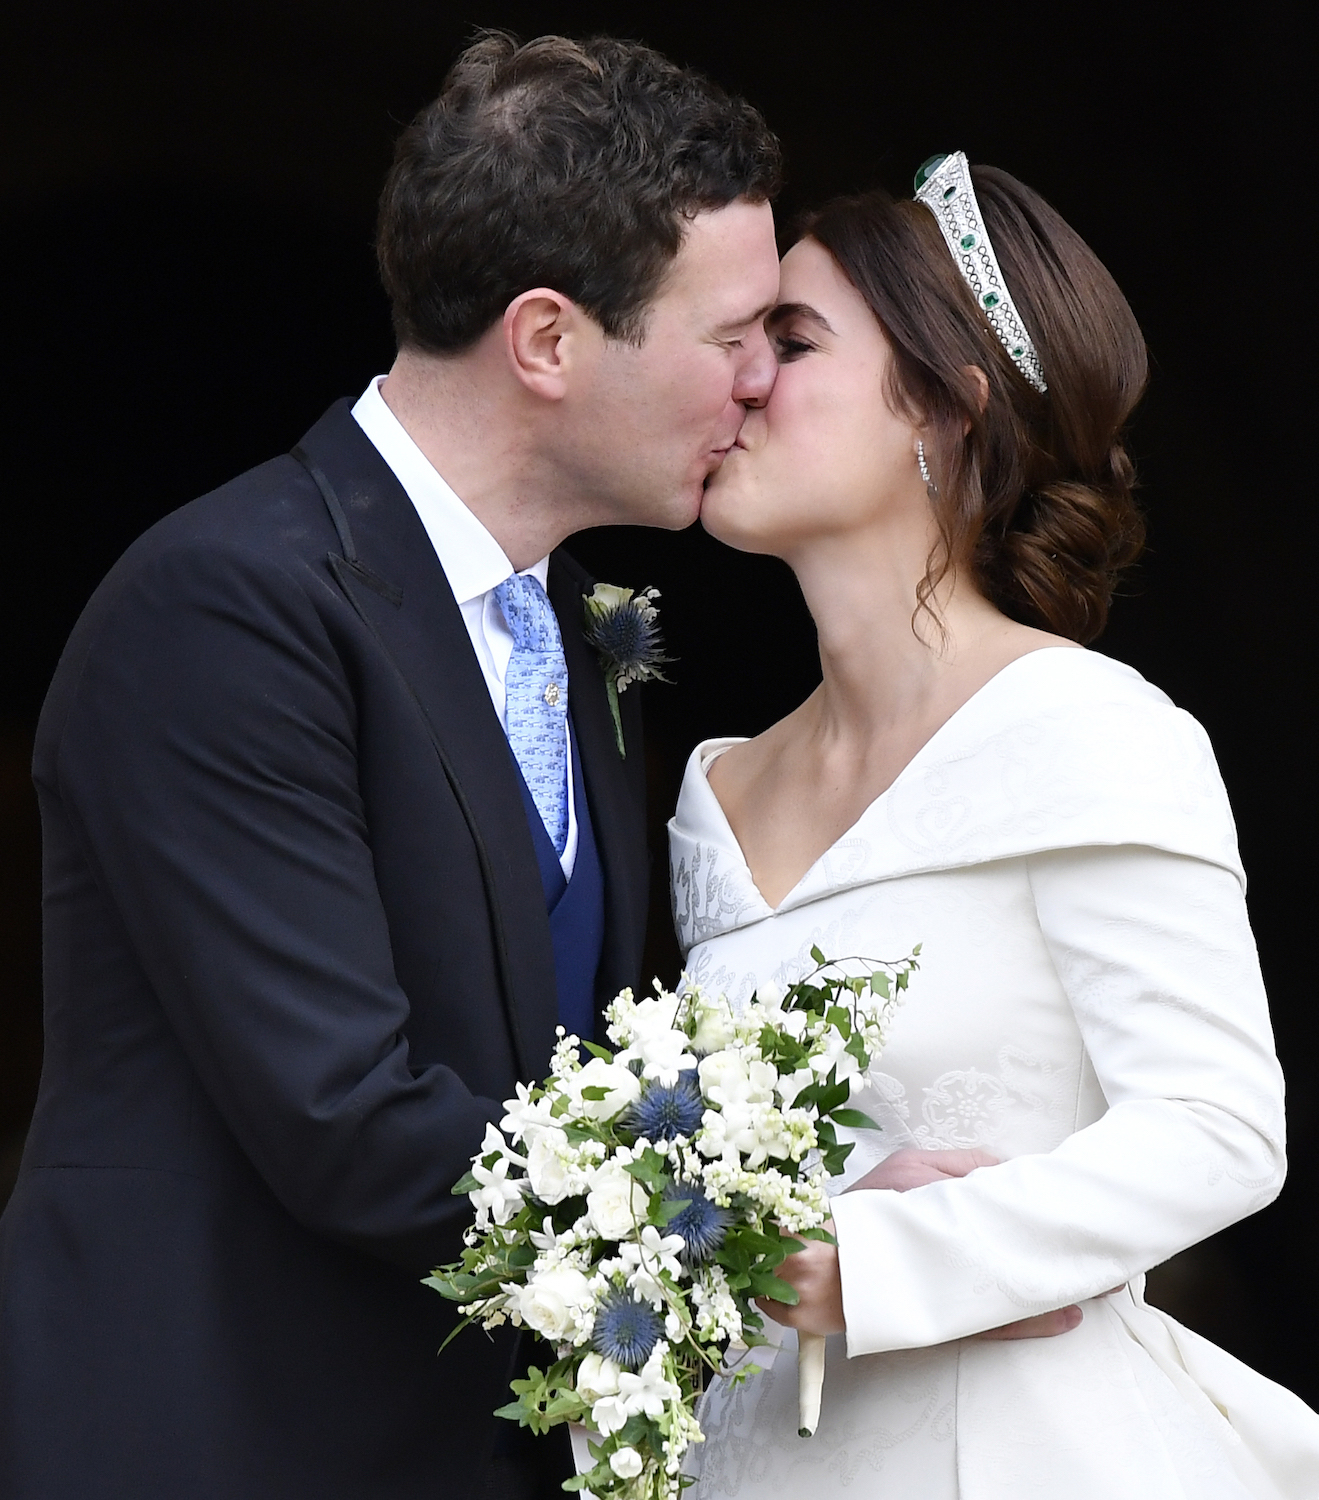 Princess Eugenie and Jack Brooksbank kiss after their wedding at St George's Chapel in Windsor Castle, Windsor, Britain October 12, 2018. REUTERS/Toby Melville